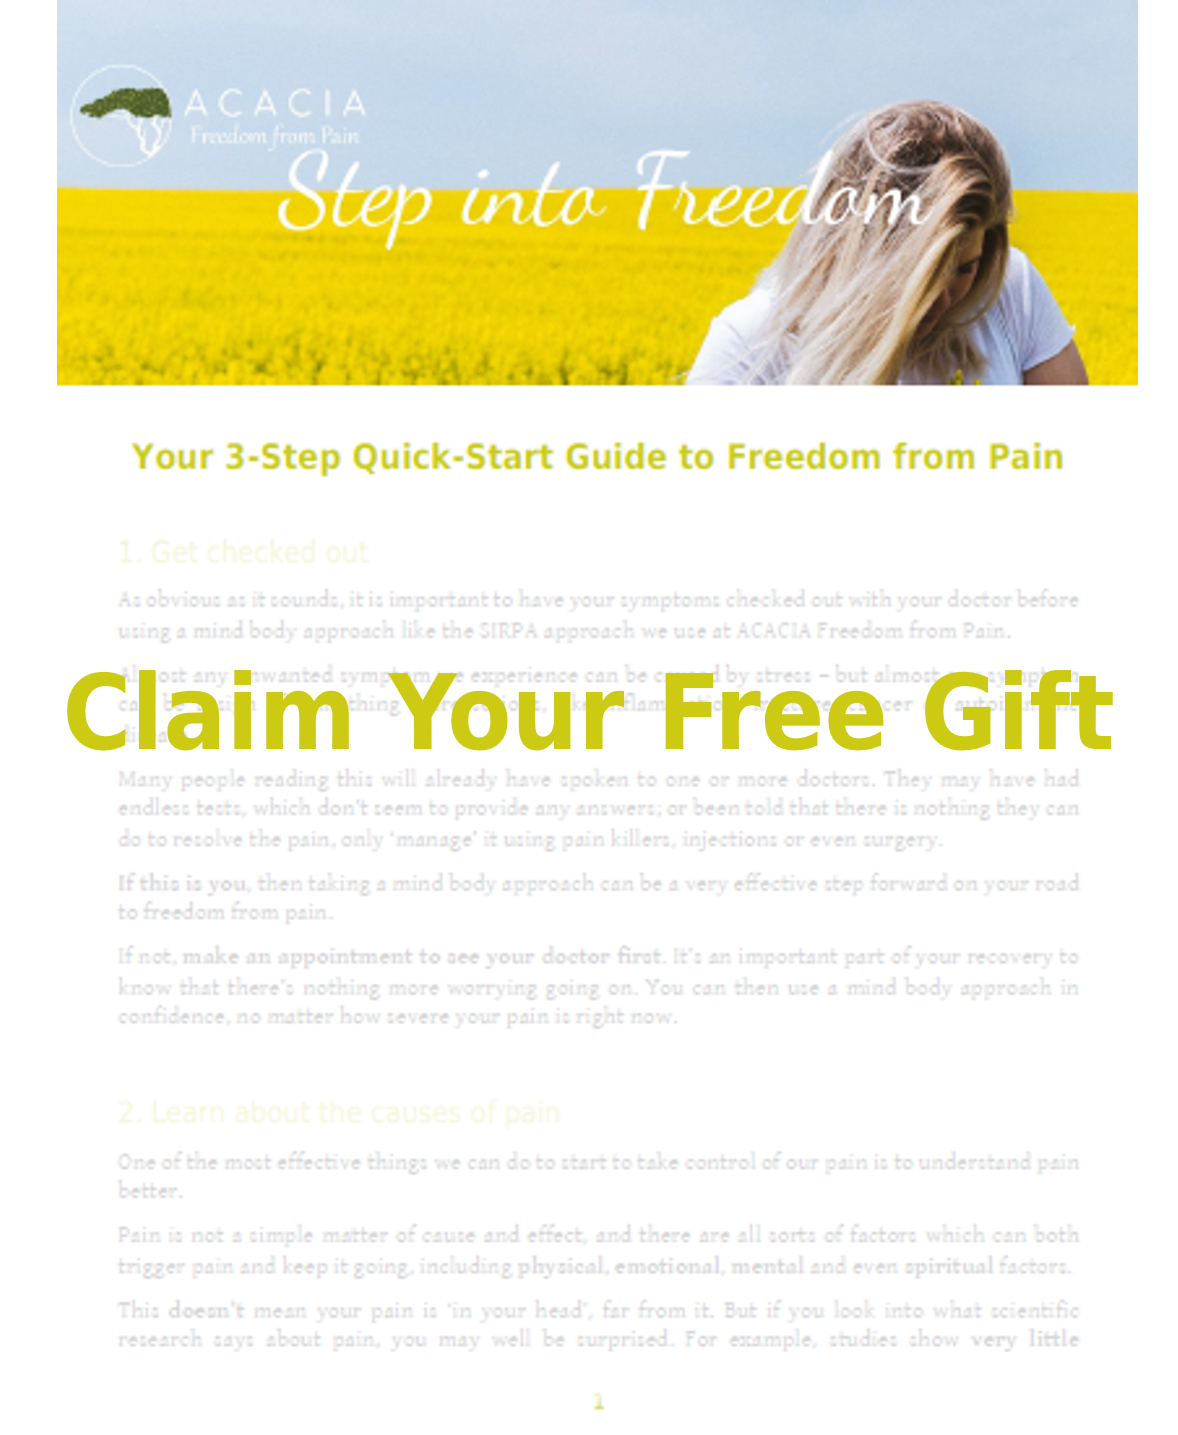 Free Gift Website Image.png